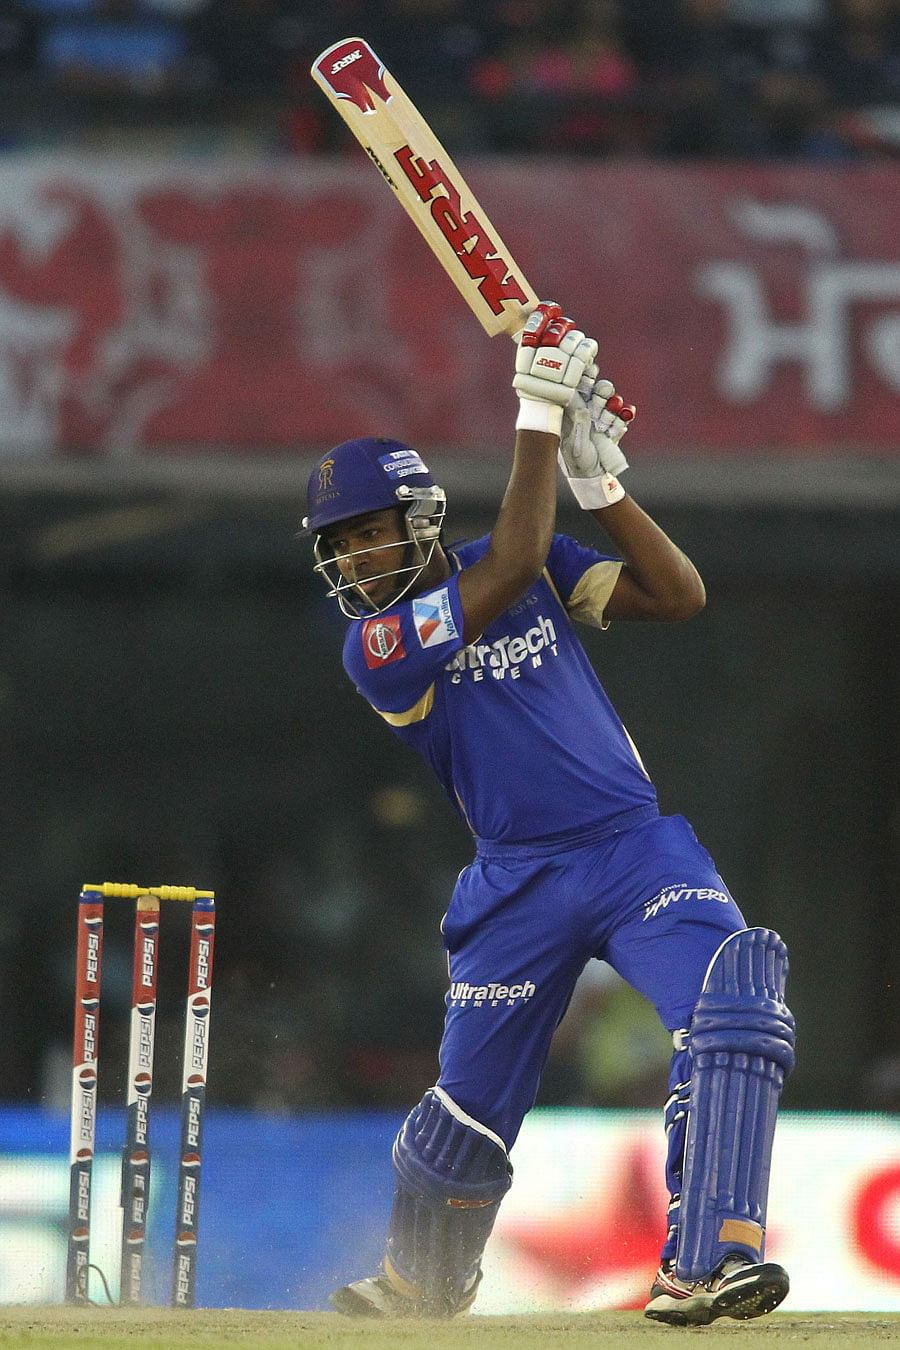 5 young Indian cricketers to watch out for in IPL 7